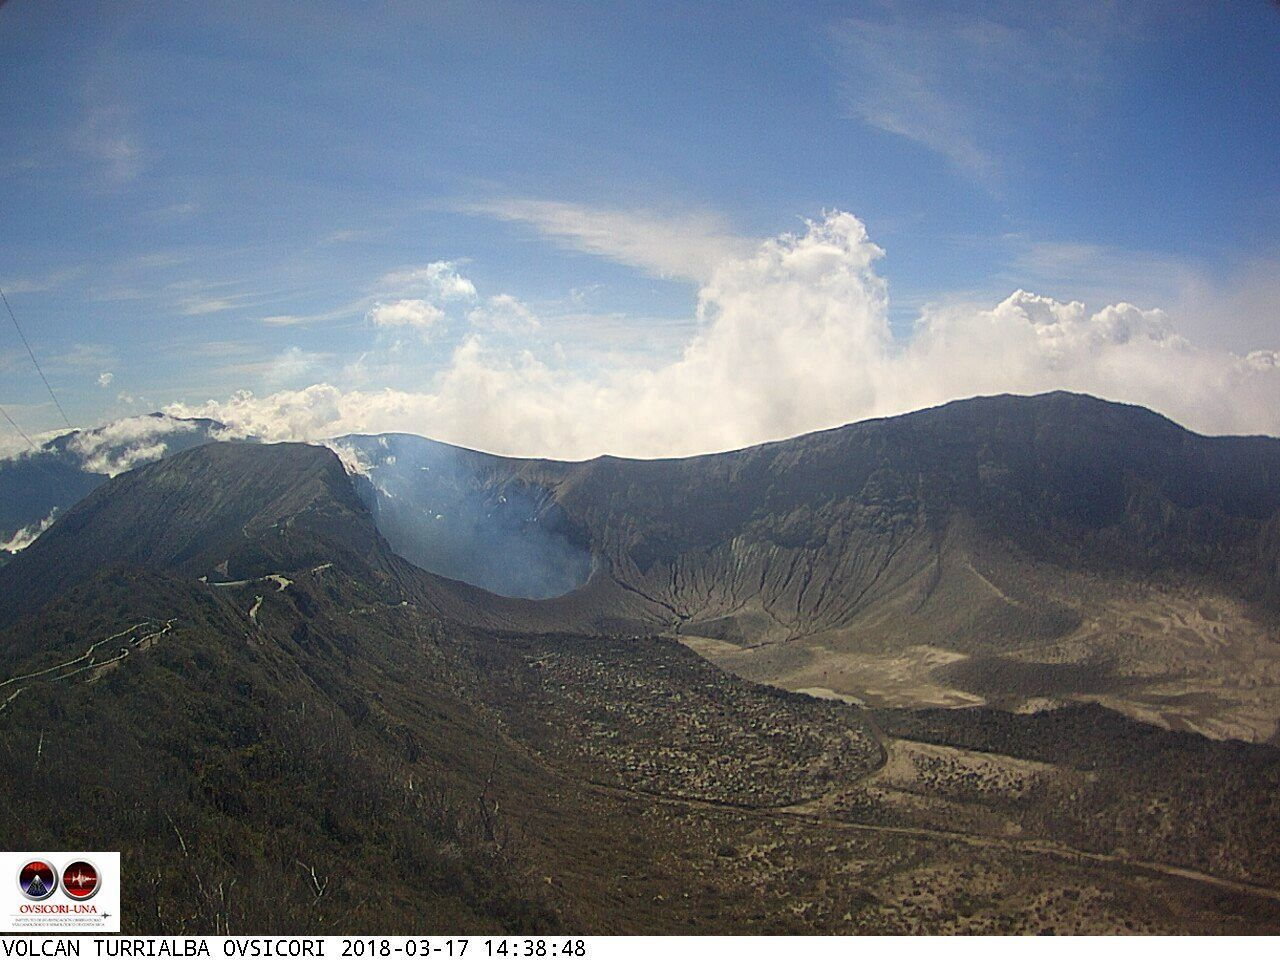 Turrialba - 17.03.2018 / 14h38 - webcam Ovsicori